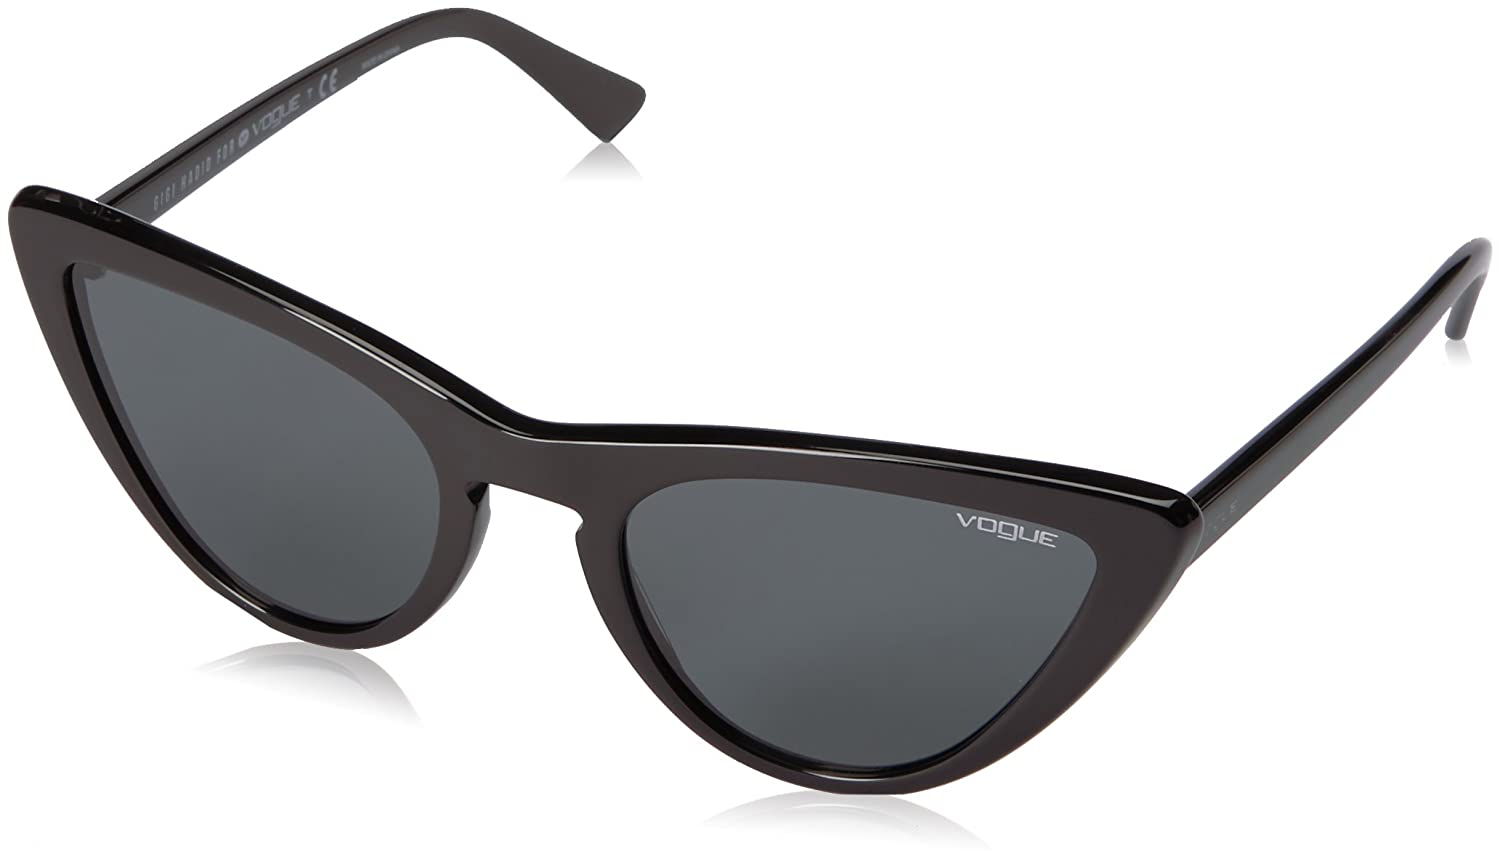 Vogue Womens Sunglasses Acetate